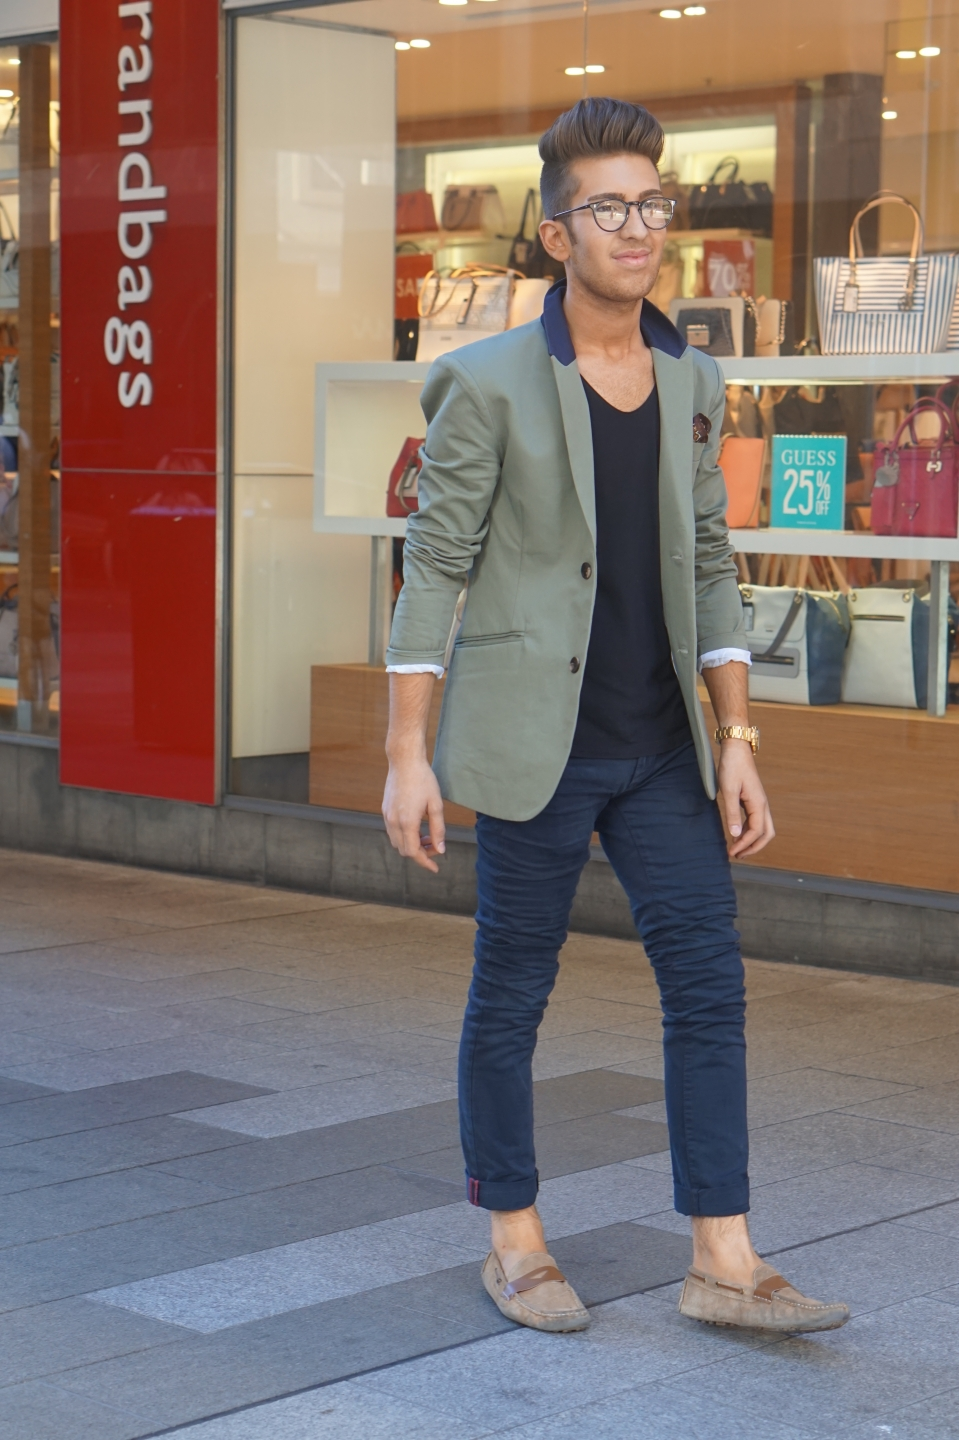 "SA David Longo, retail and music, Gawler Place, Adelaide. I dress with my own sense of fashion and I do music""."